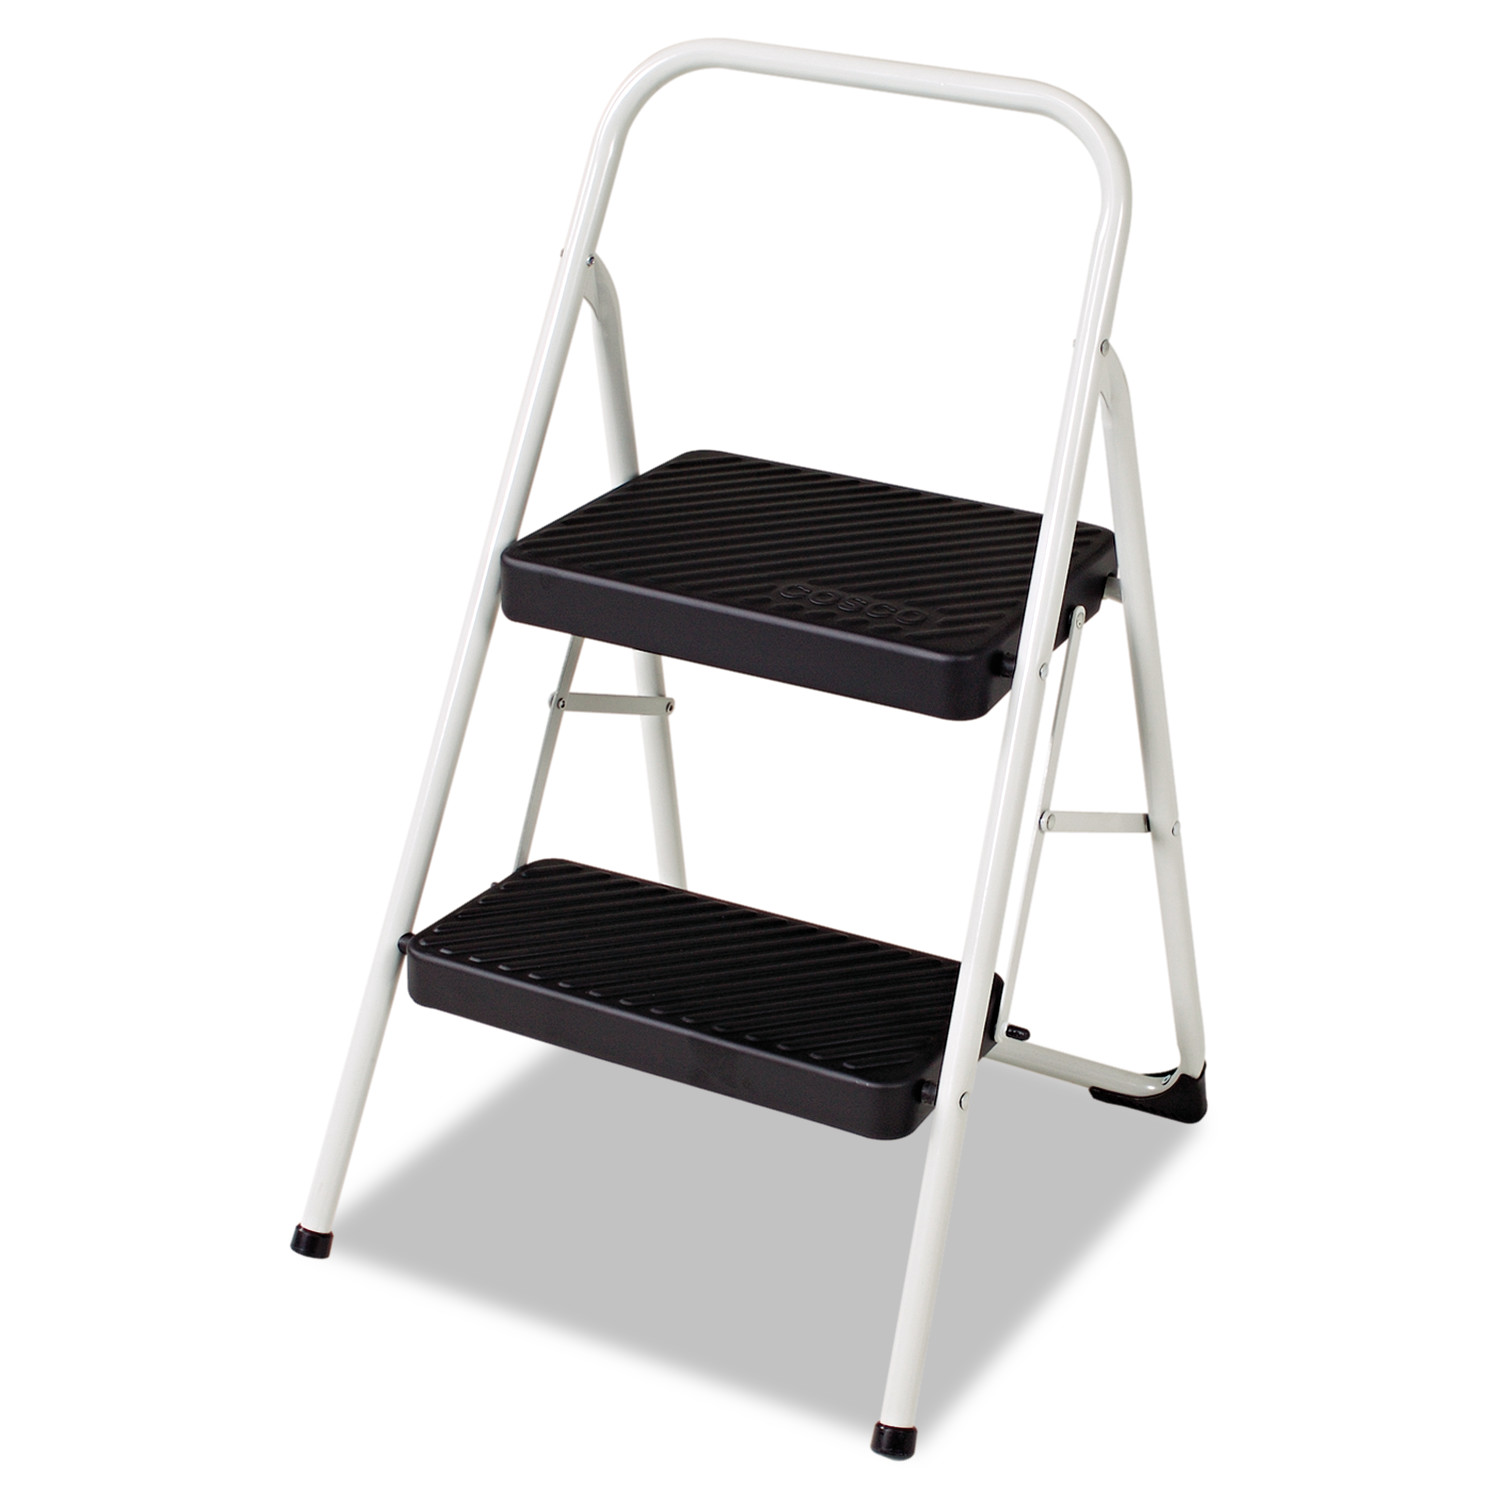 Cosco 2-Step Folding Steel Step Stool 200lbs 17 3/8w x  sc 1 st  Walmart & Folding Step Stools islam-shia.org